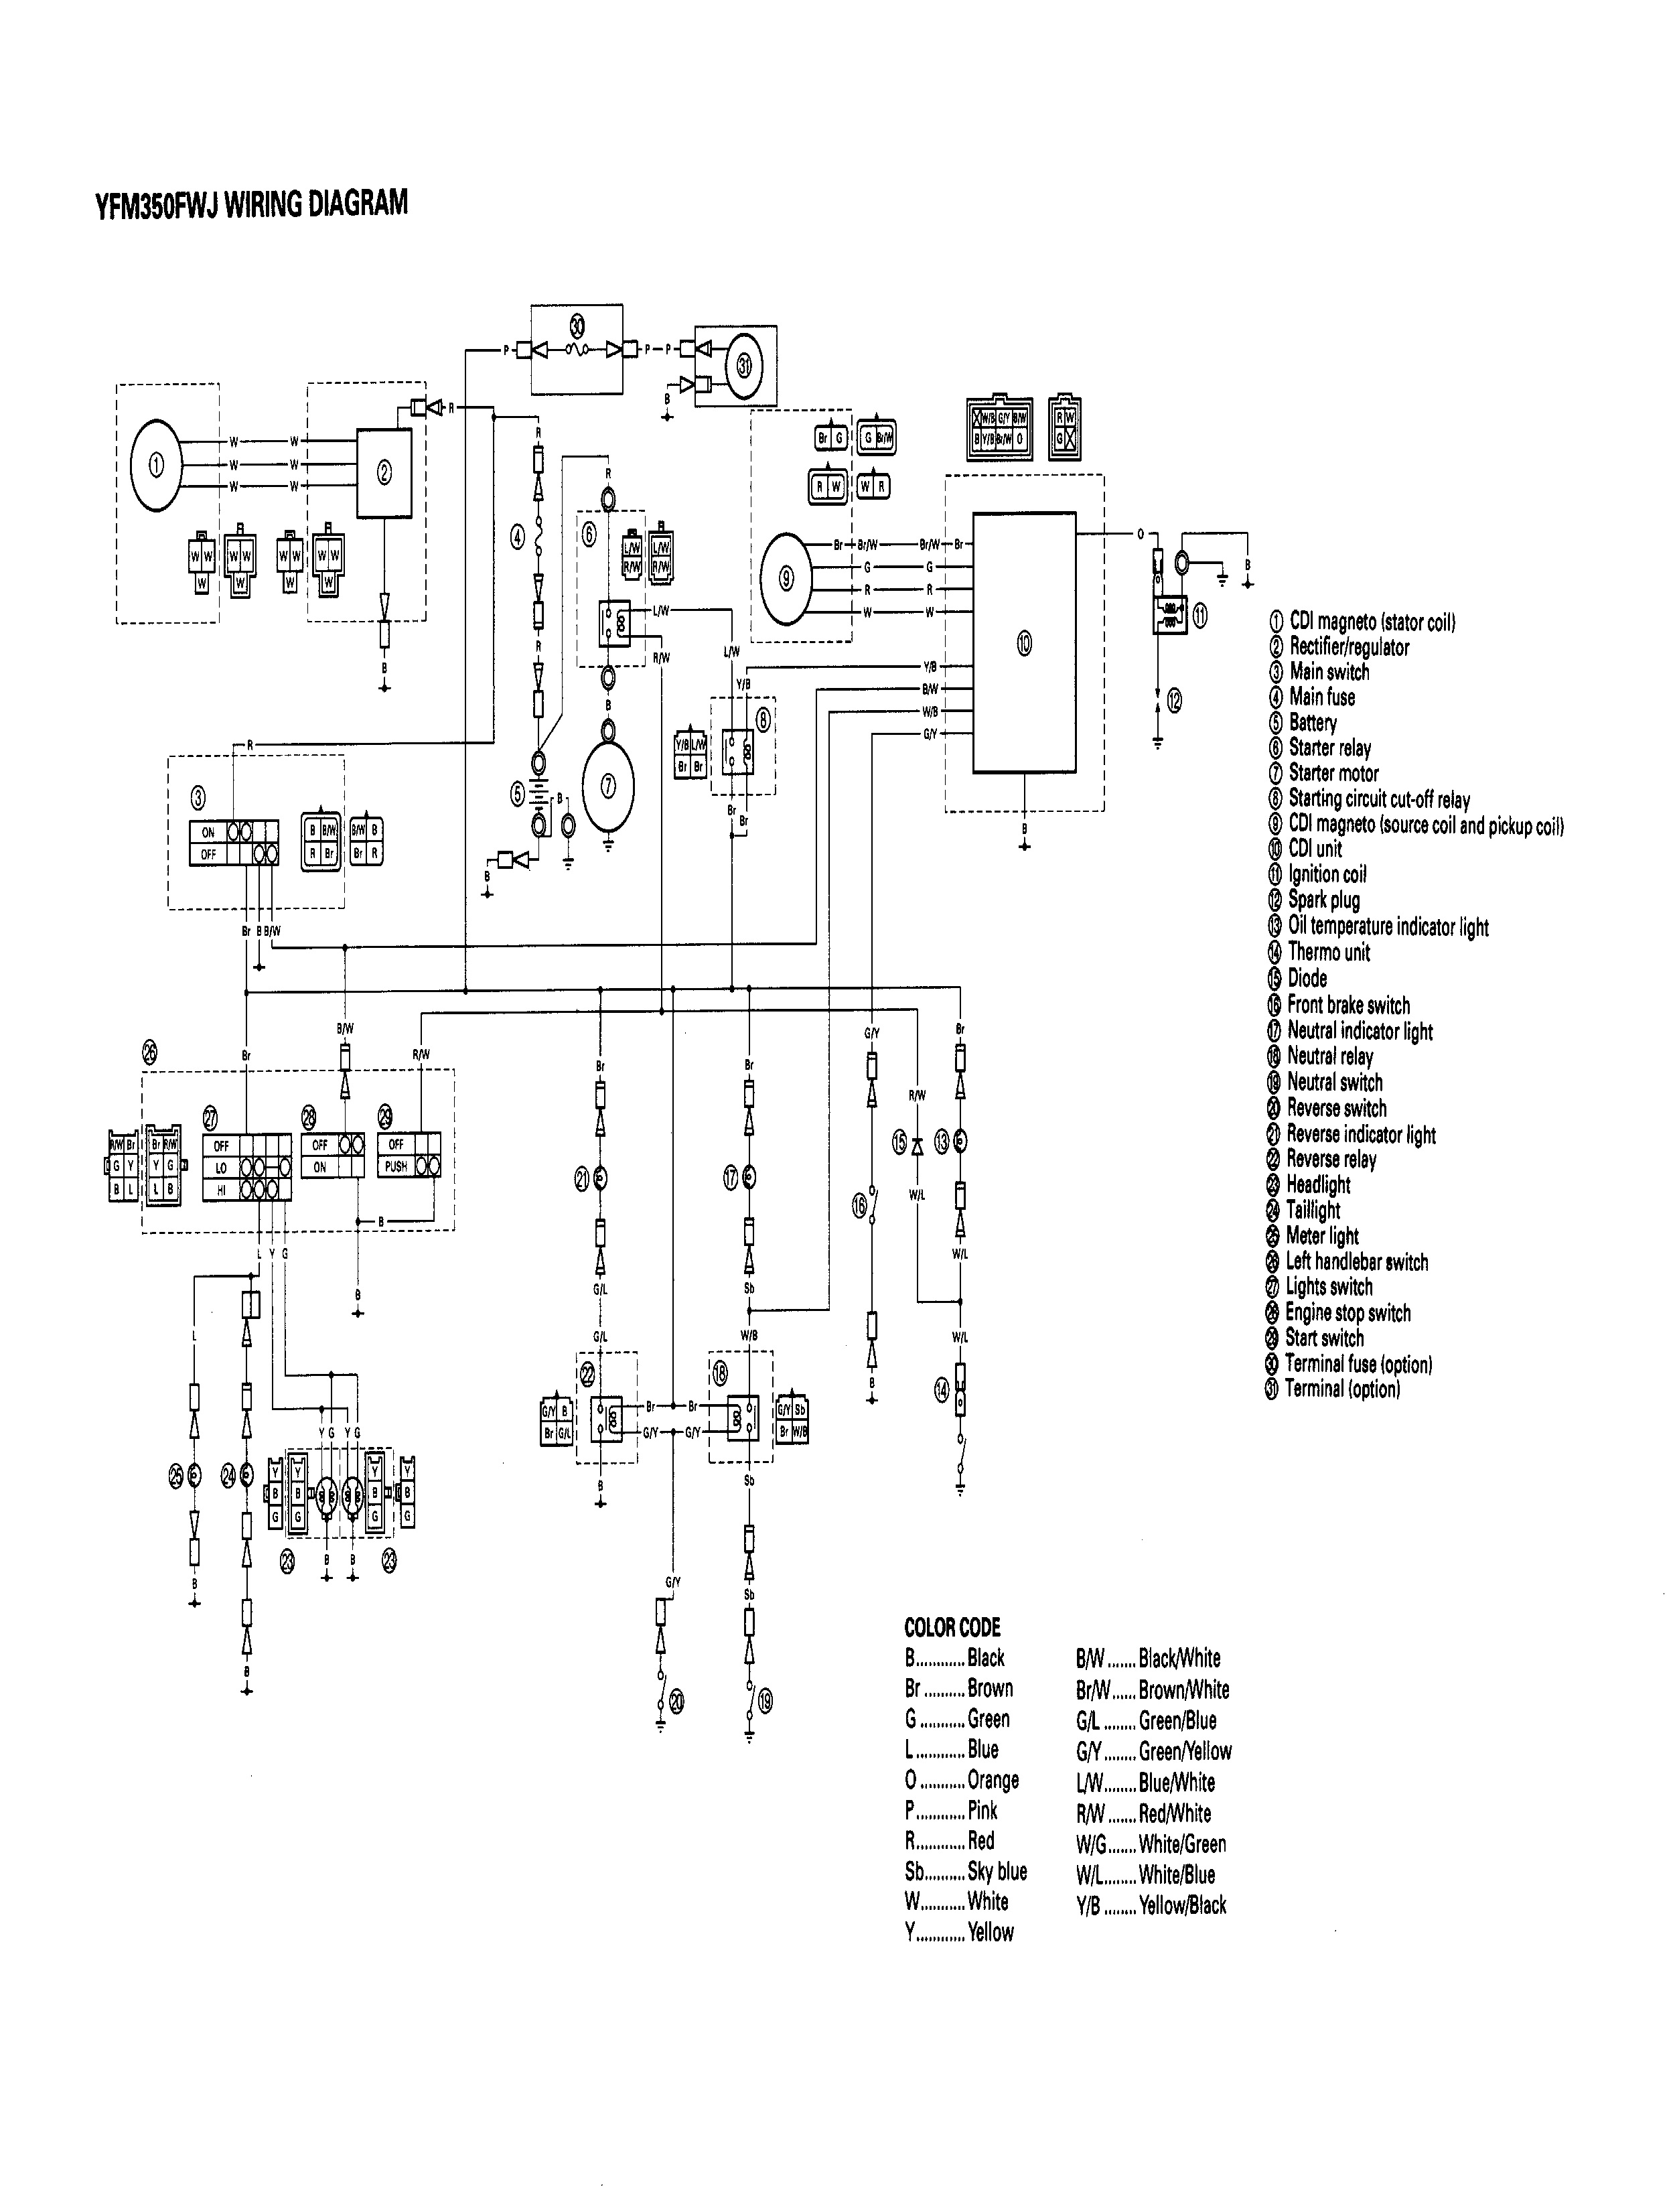 DIAGRAM] Grizzly 125 Wiring FULL Version HD Quality Diagram Atv -  REKLAMGRAFIK.CHEFSCUISINIERSAIN.FRreklamgrafik.chefscuisiniersain.fr